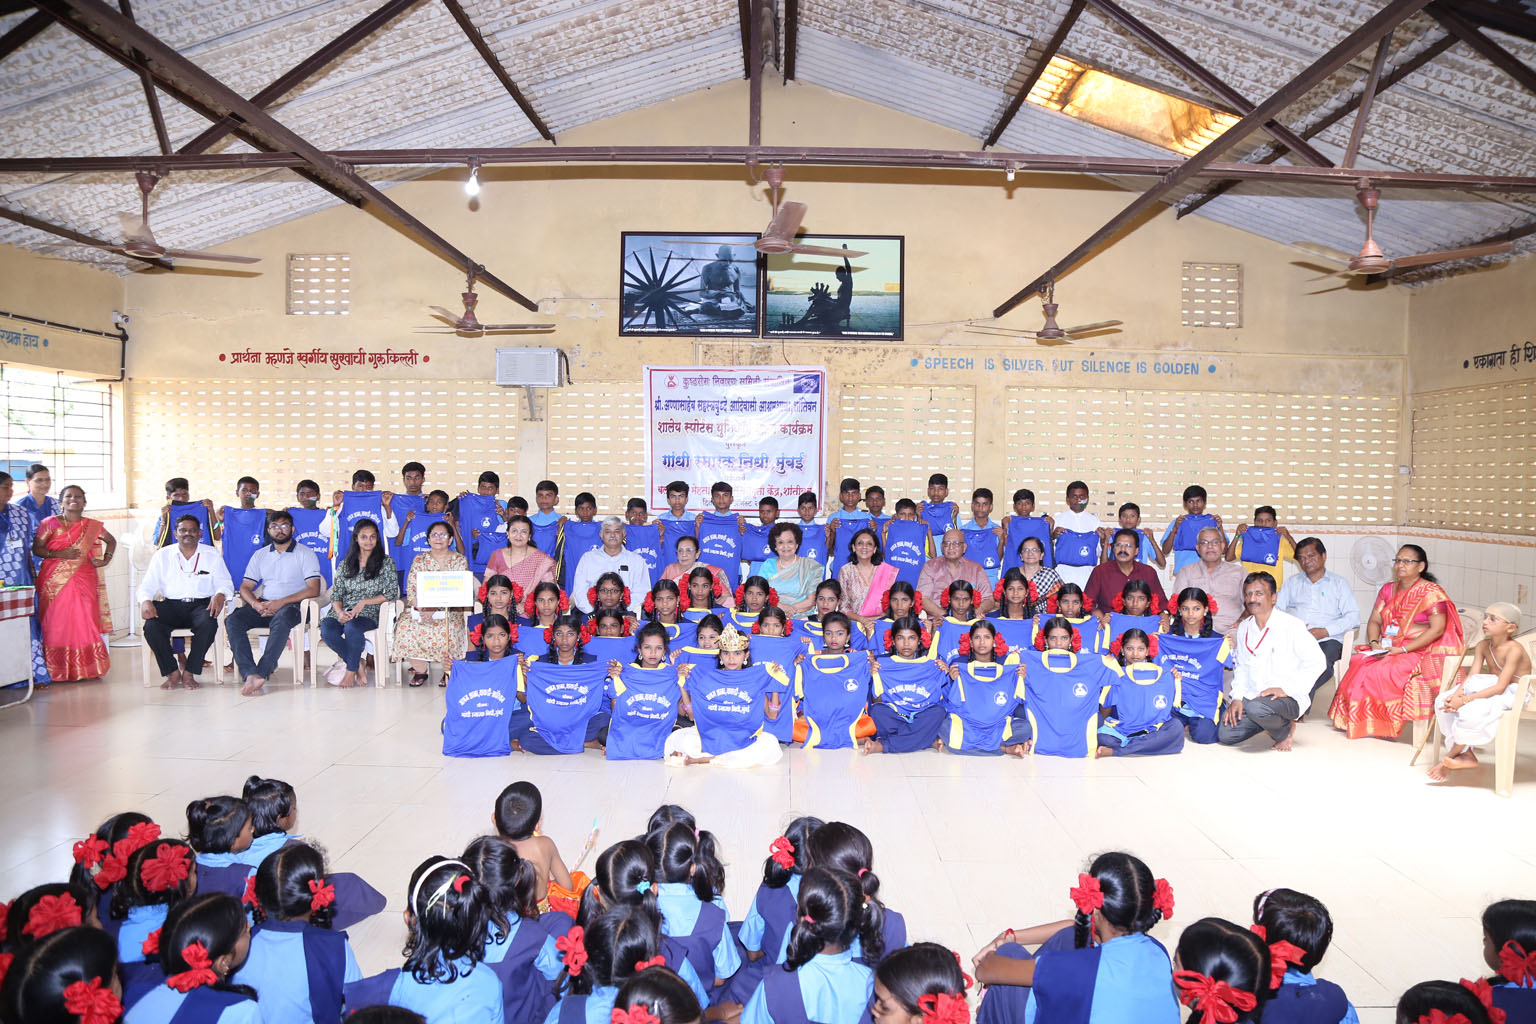 Students proudly display their sports uniforms